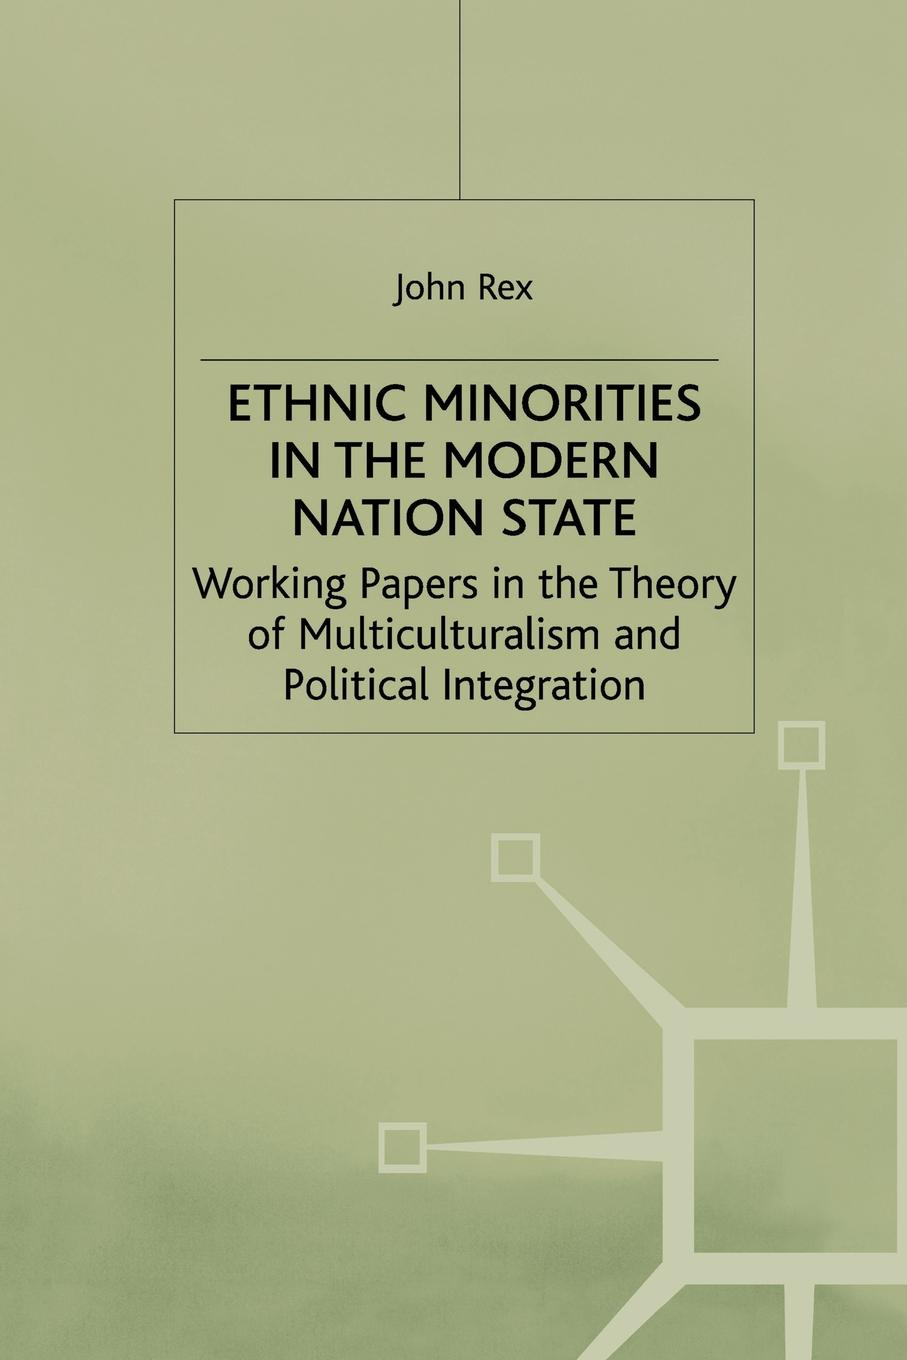 J. Rex Ethnic Minorities in the Modern Nation State. Working Papers in the Theory of Multiculturalism and Political Integration belle harrell multiculturalism must come to a truce hollywood and the perpetual browning of the nation